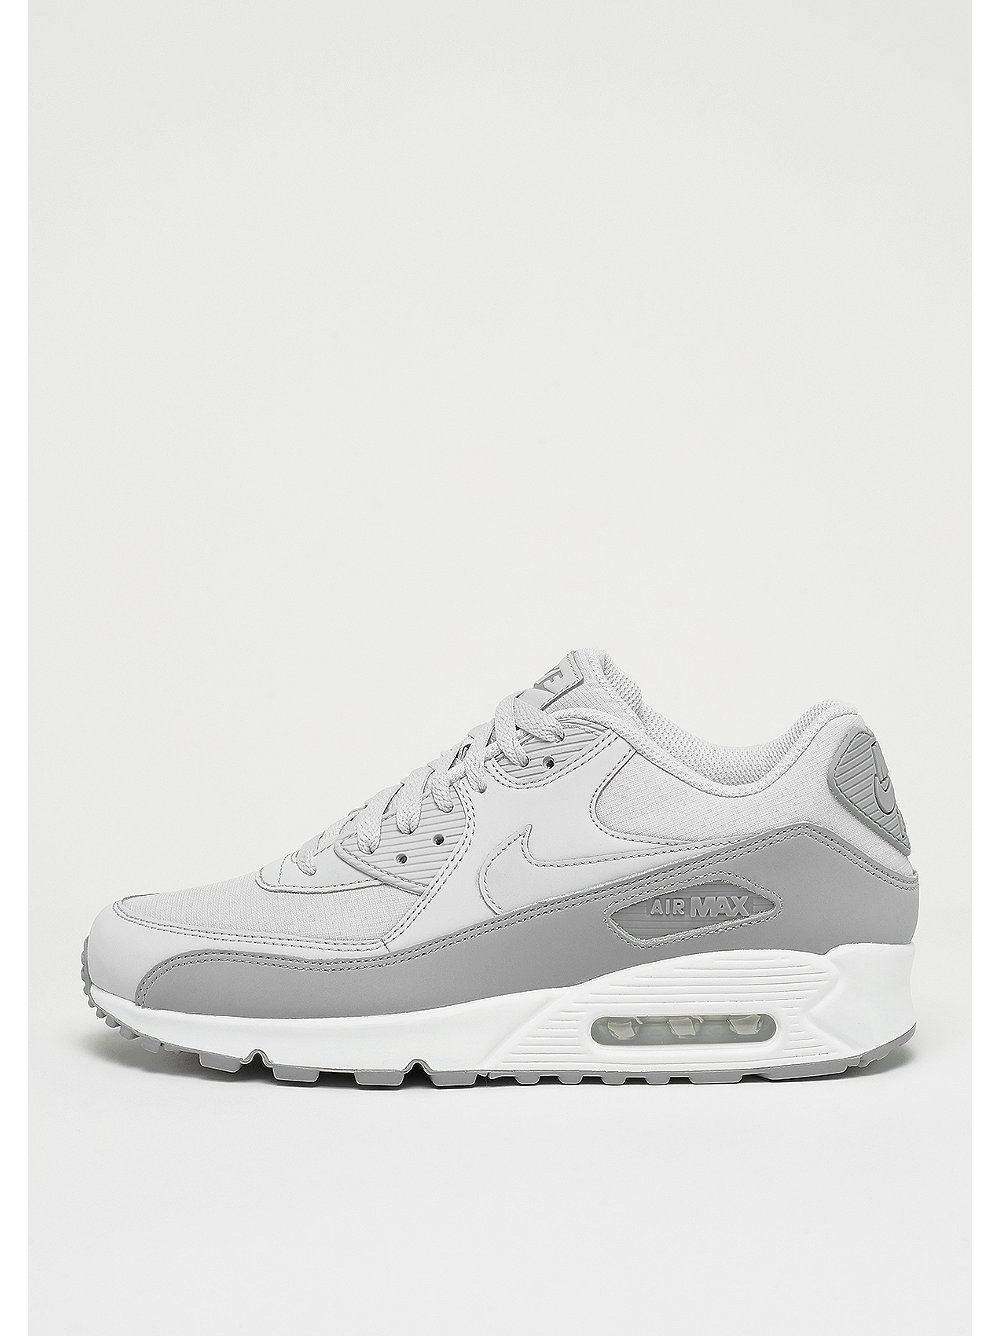 NIKE Air Max 90 Essential bianche Sneakers su SNIPES